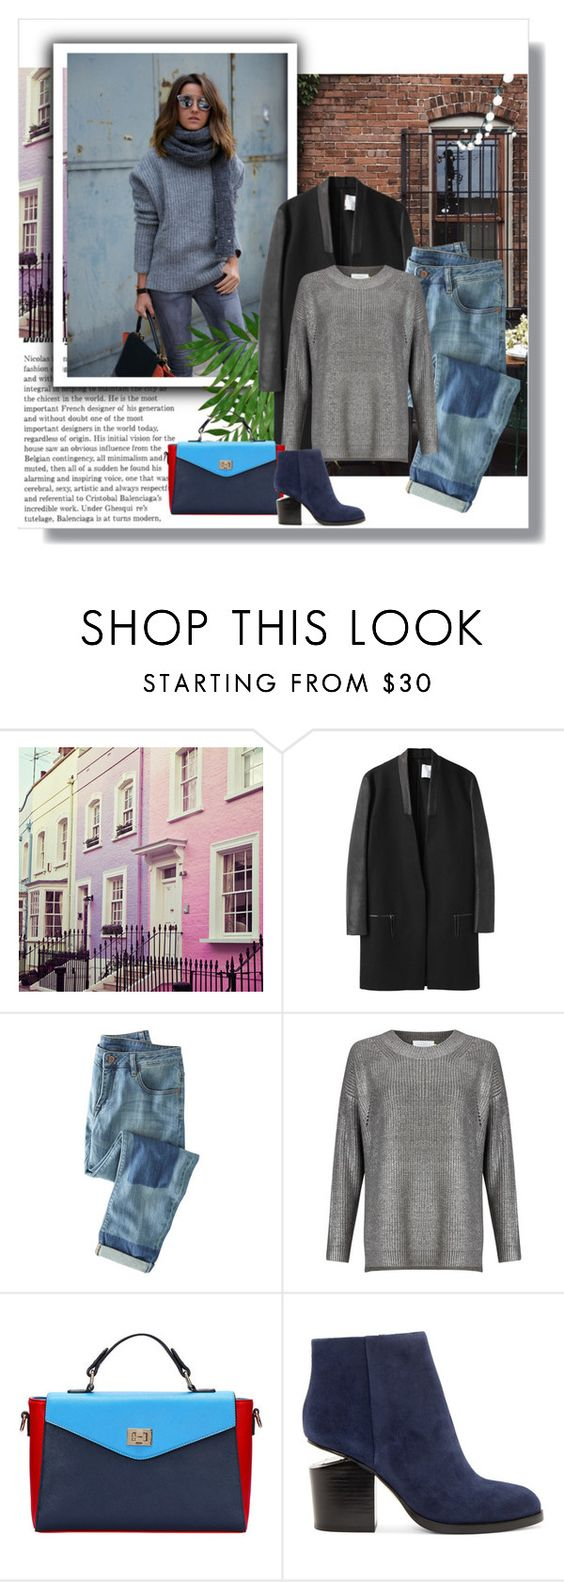 """""""Untitled #173"""" by borabo ❤ liked on Polyvore featuring Jeremy Laing, Wrap, John Lewis and Alexander Wang"""